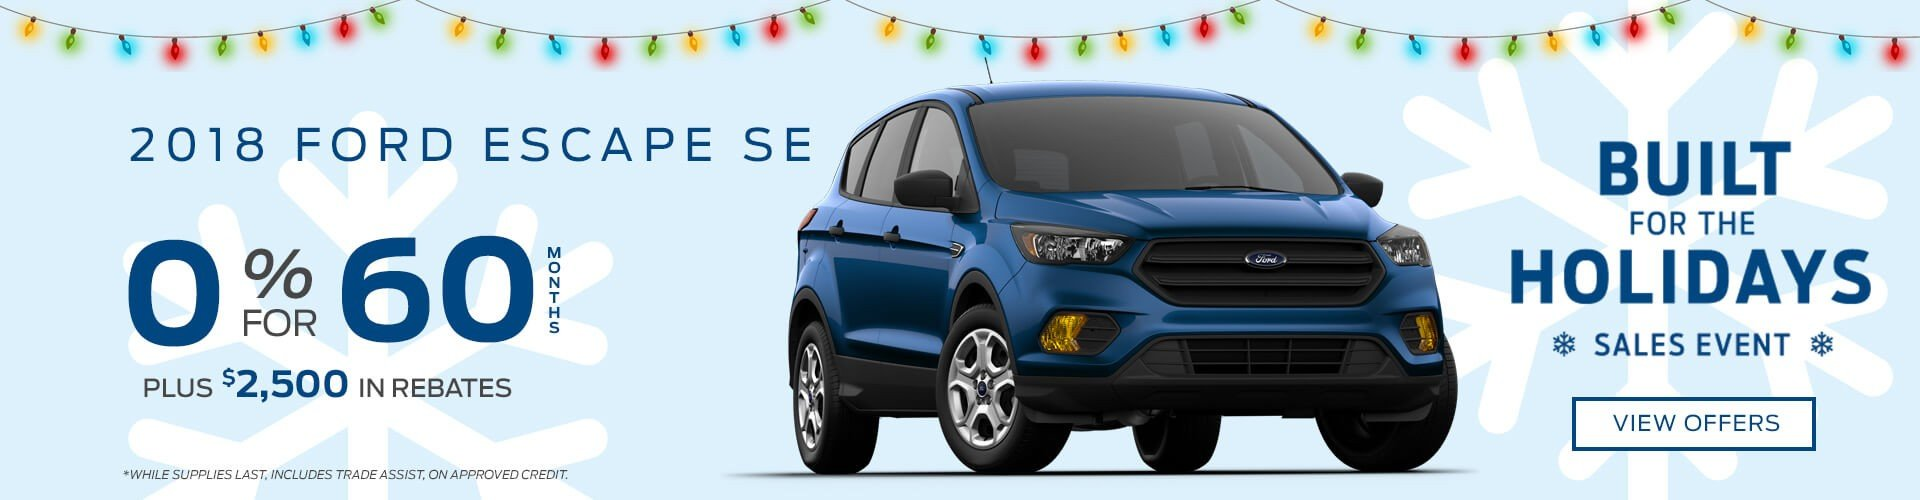 Special offer on 2018 Ford Escape 2018 Ford Escape SE